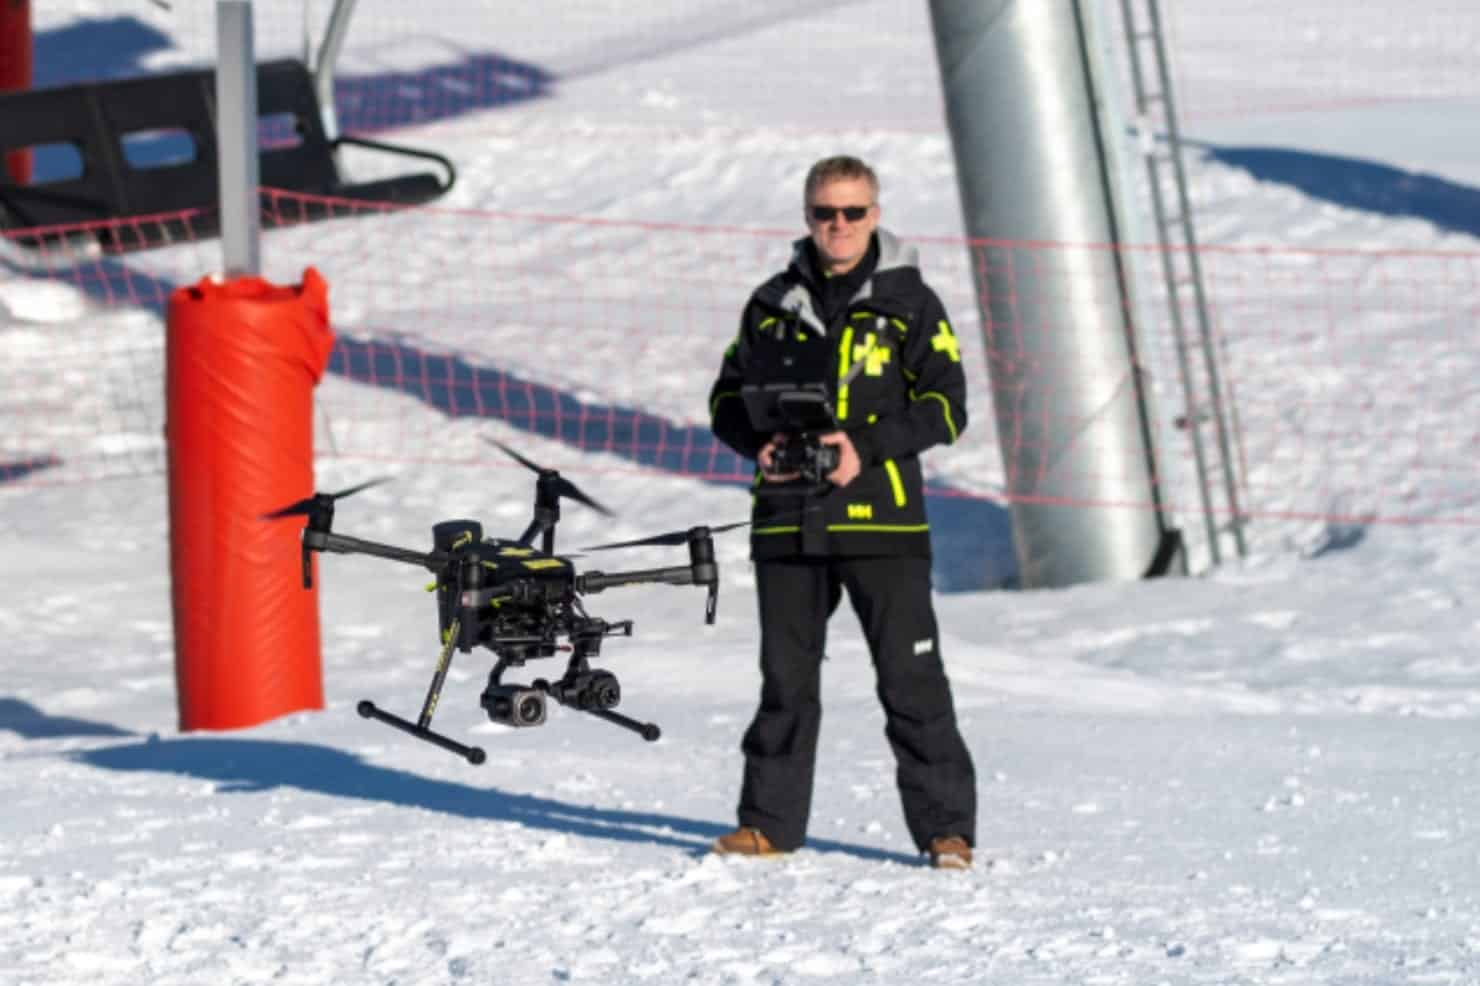 French ski resort turns to thermal drones to aid rescue workers